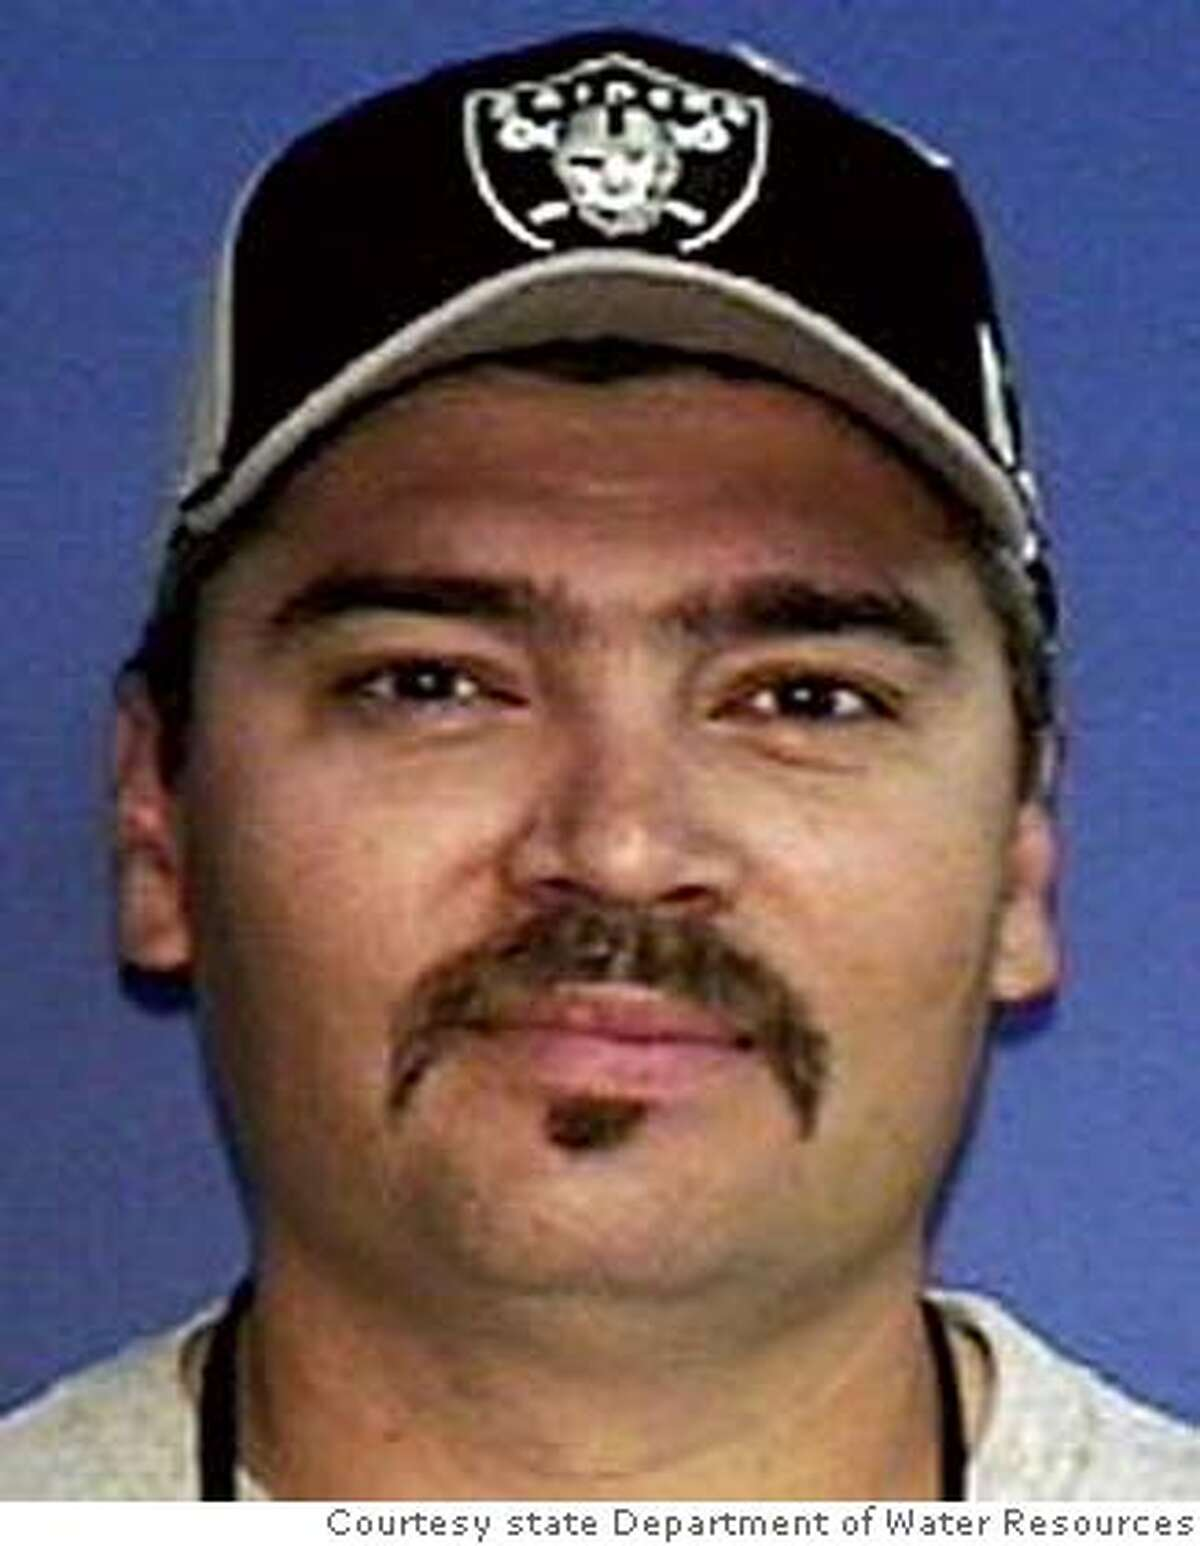 One of the divers who died, Martin Alvarado, 44, of Coalinga. Credit: Courtesy state Department of Water Resources